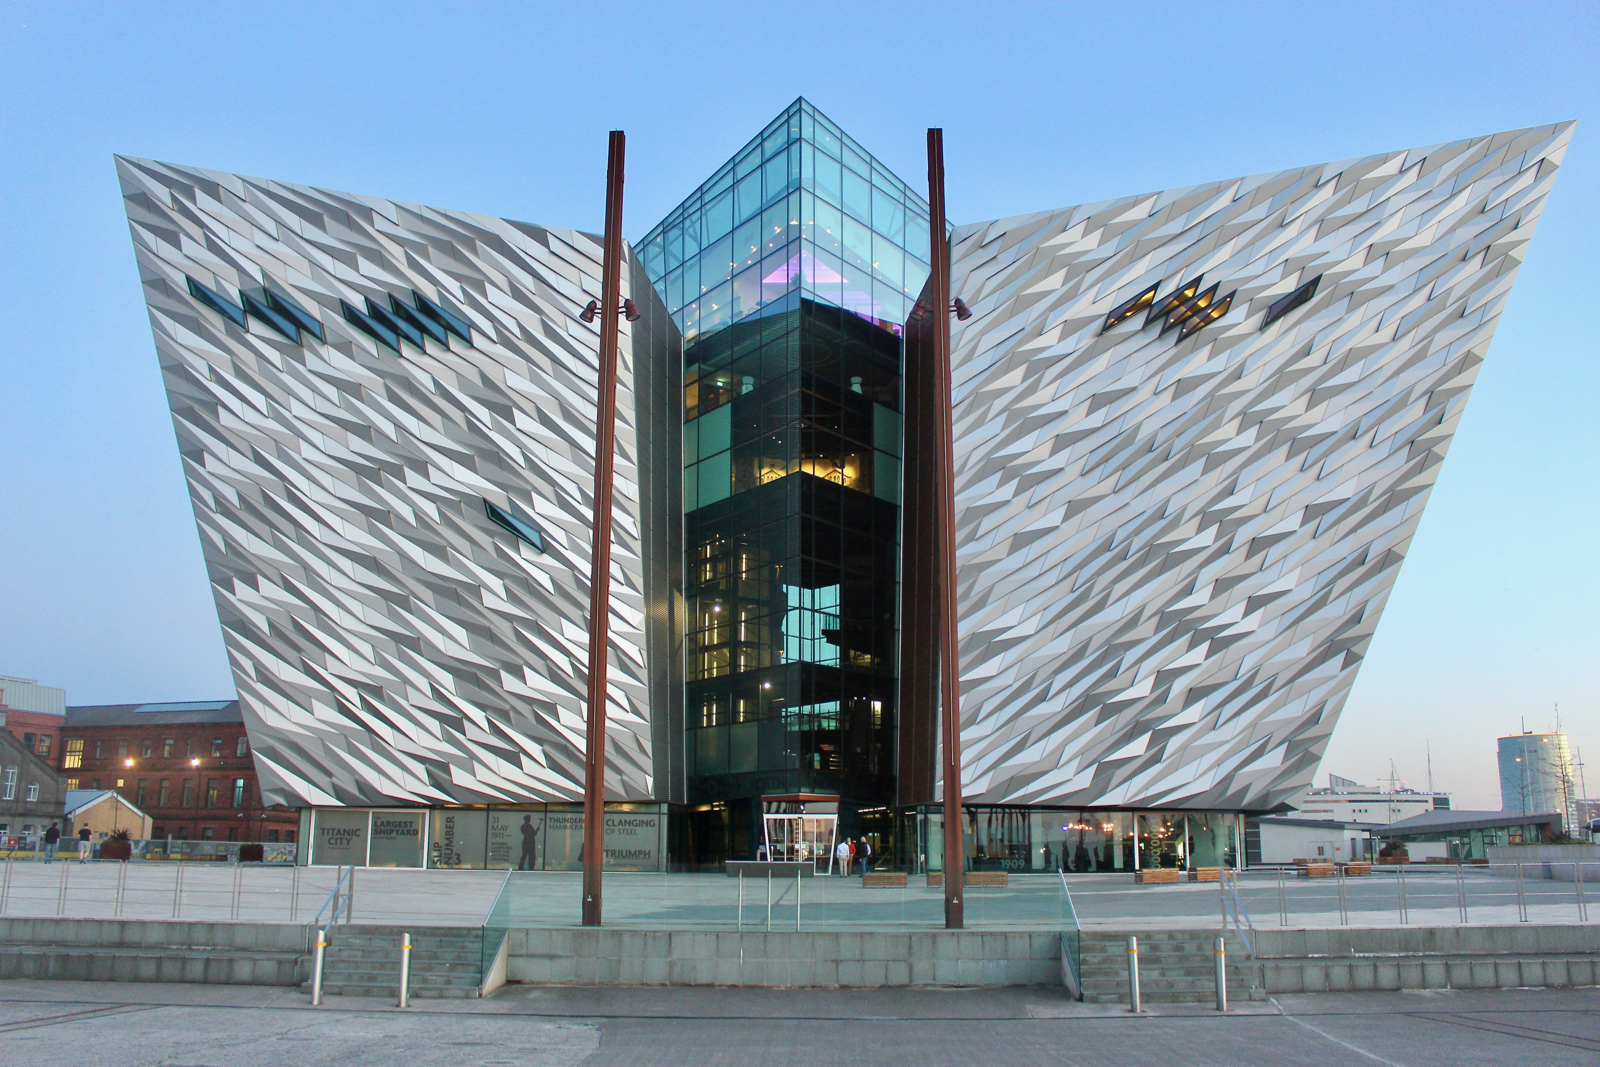 things to do in belfast, titanic belfast, titanic exhibition centre Belfast, what to do in Belfast, visit Belfast, Belfast blog, Belfast blogger, tourism Belfast, northern ireland tourism, titanic quarter Belfast